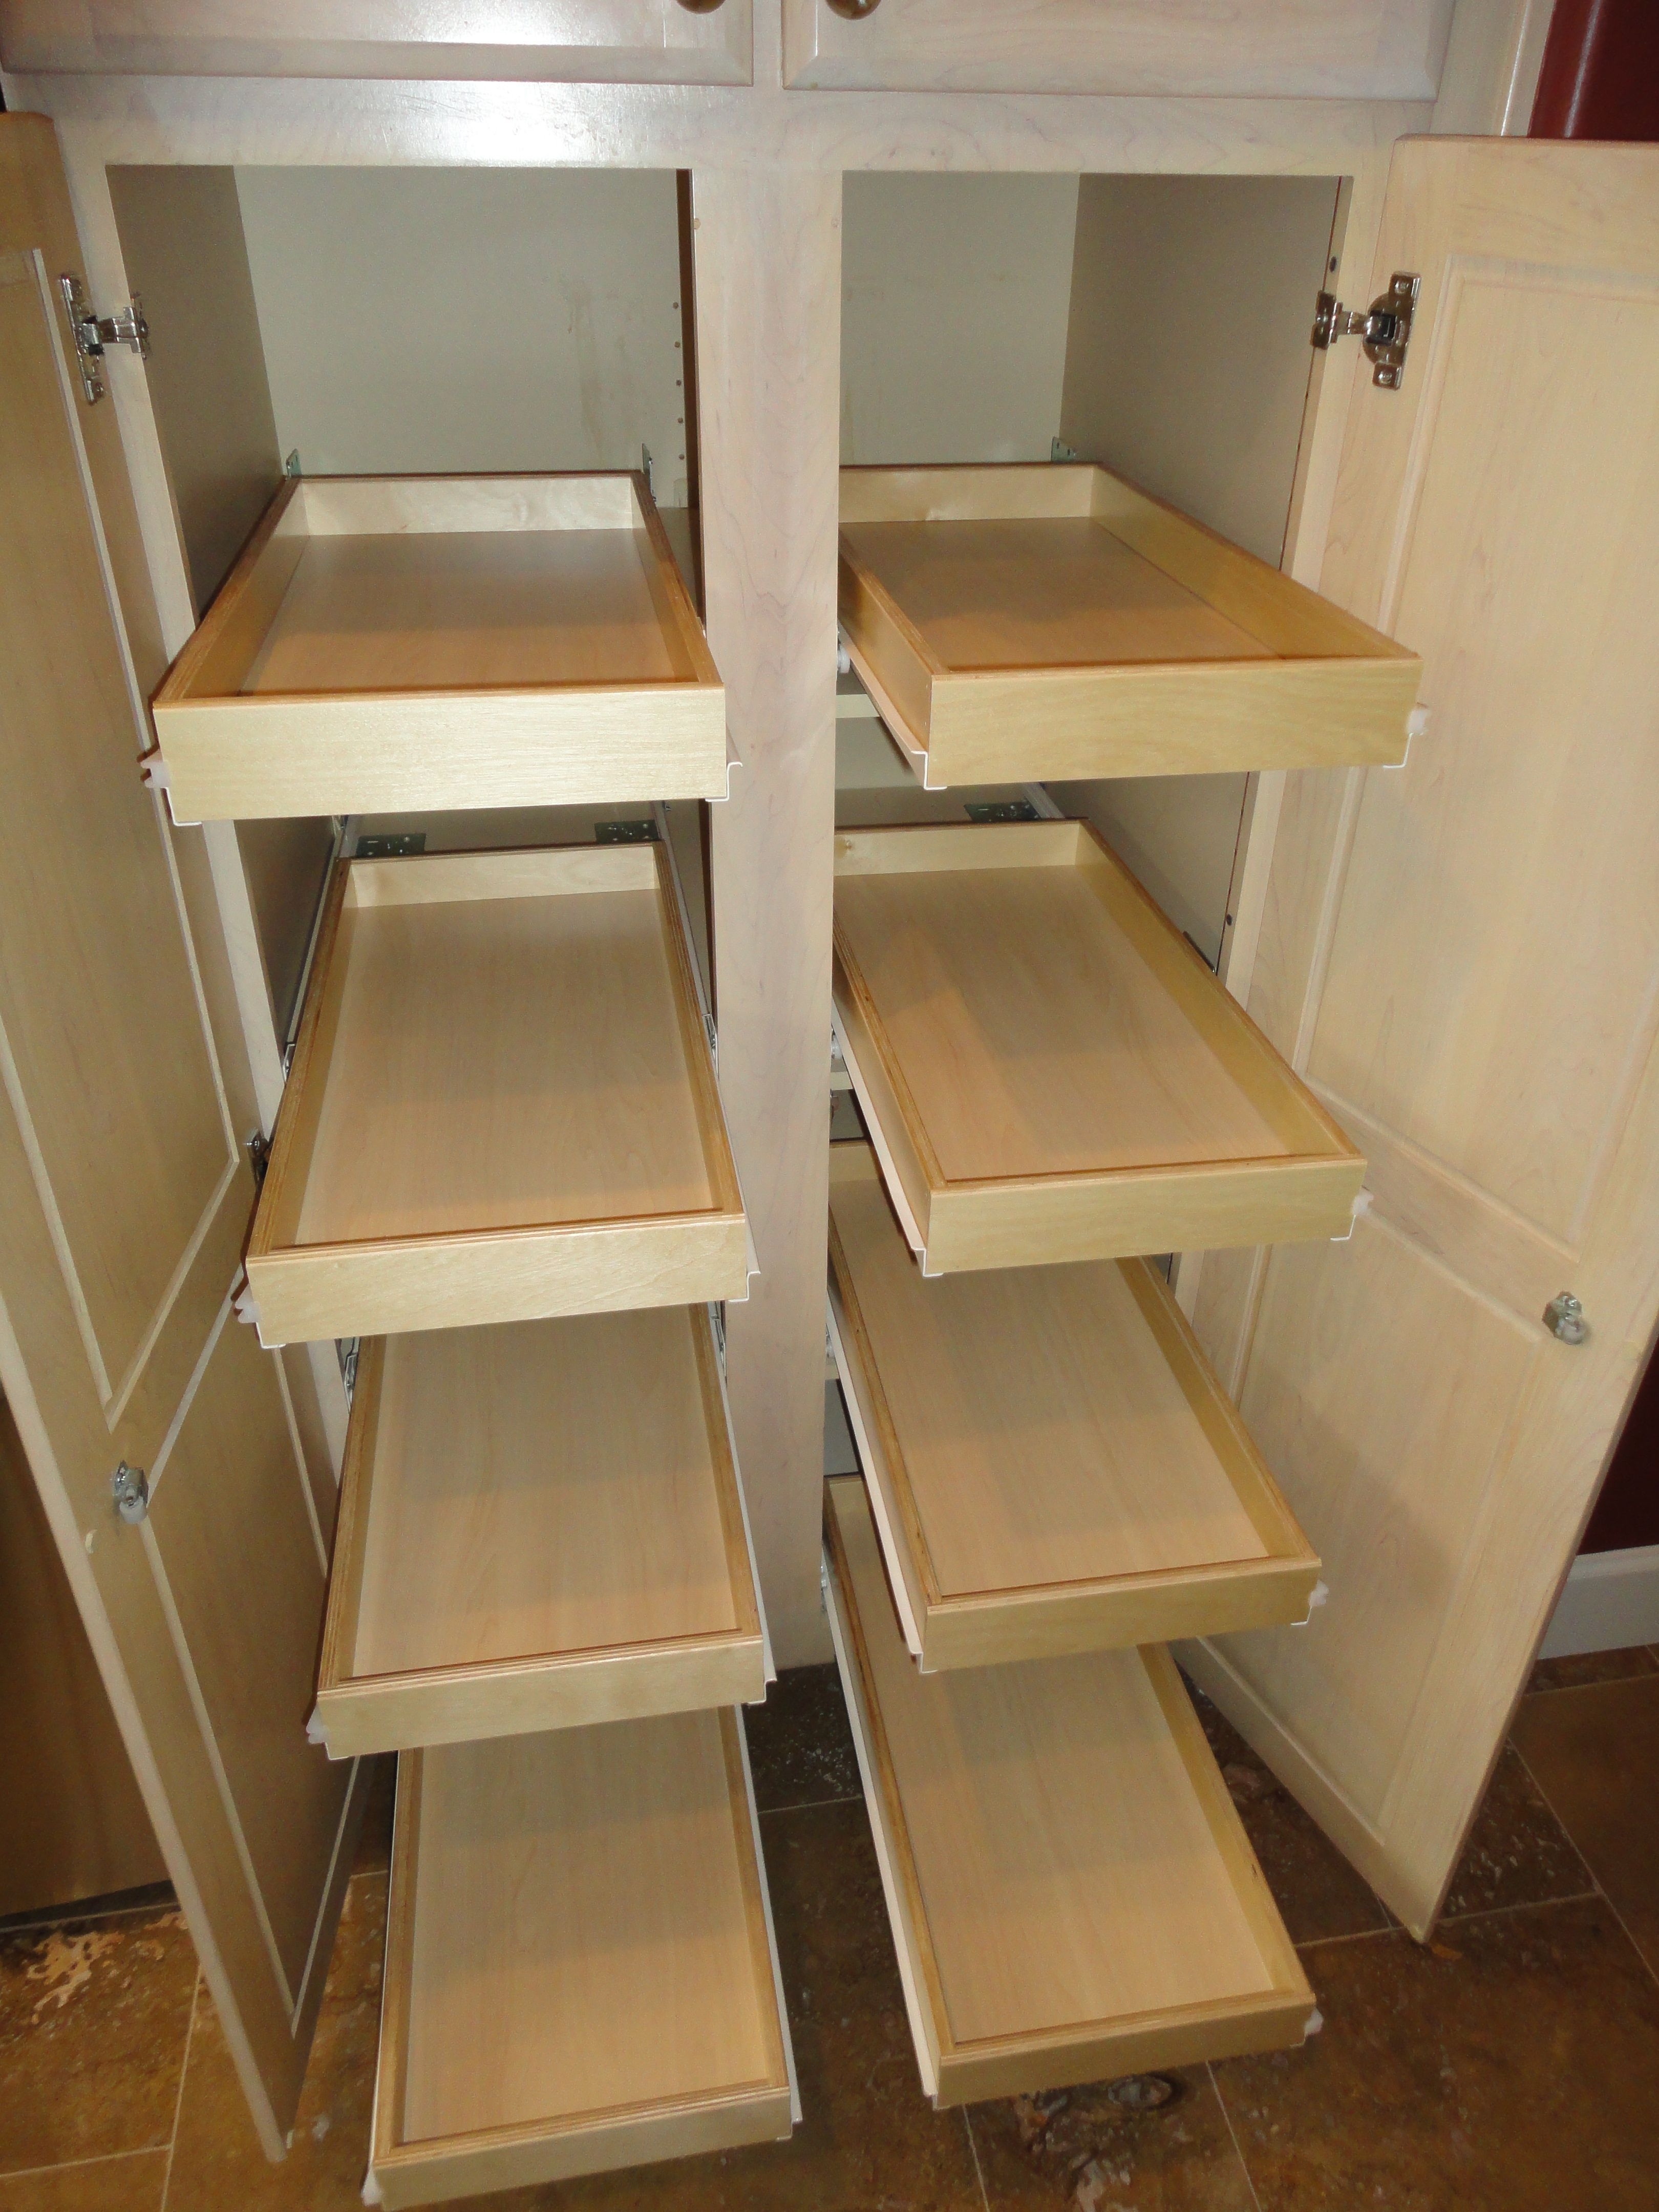 8 Slide Out Shelves Added To Pantry Cabinet Oh Michele In 2019 Slide Out Shelves Shelves Pantry Cabinet